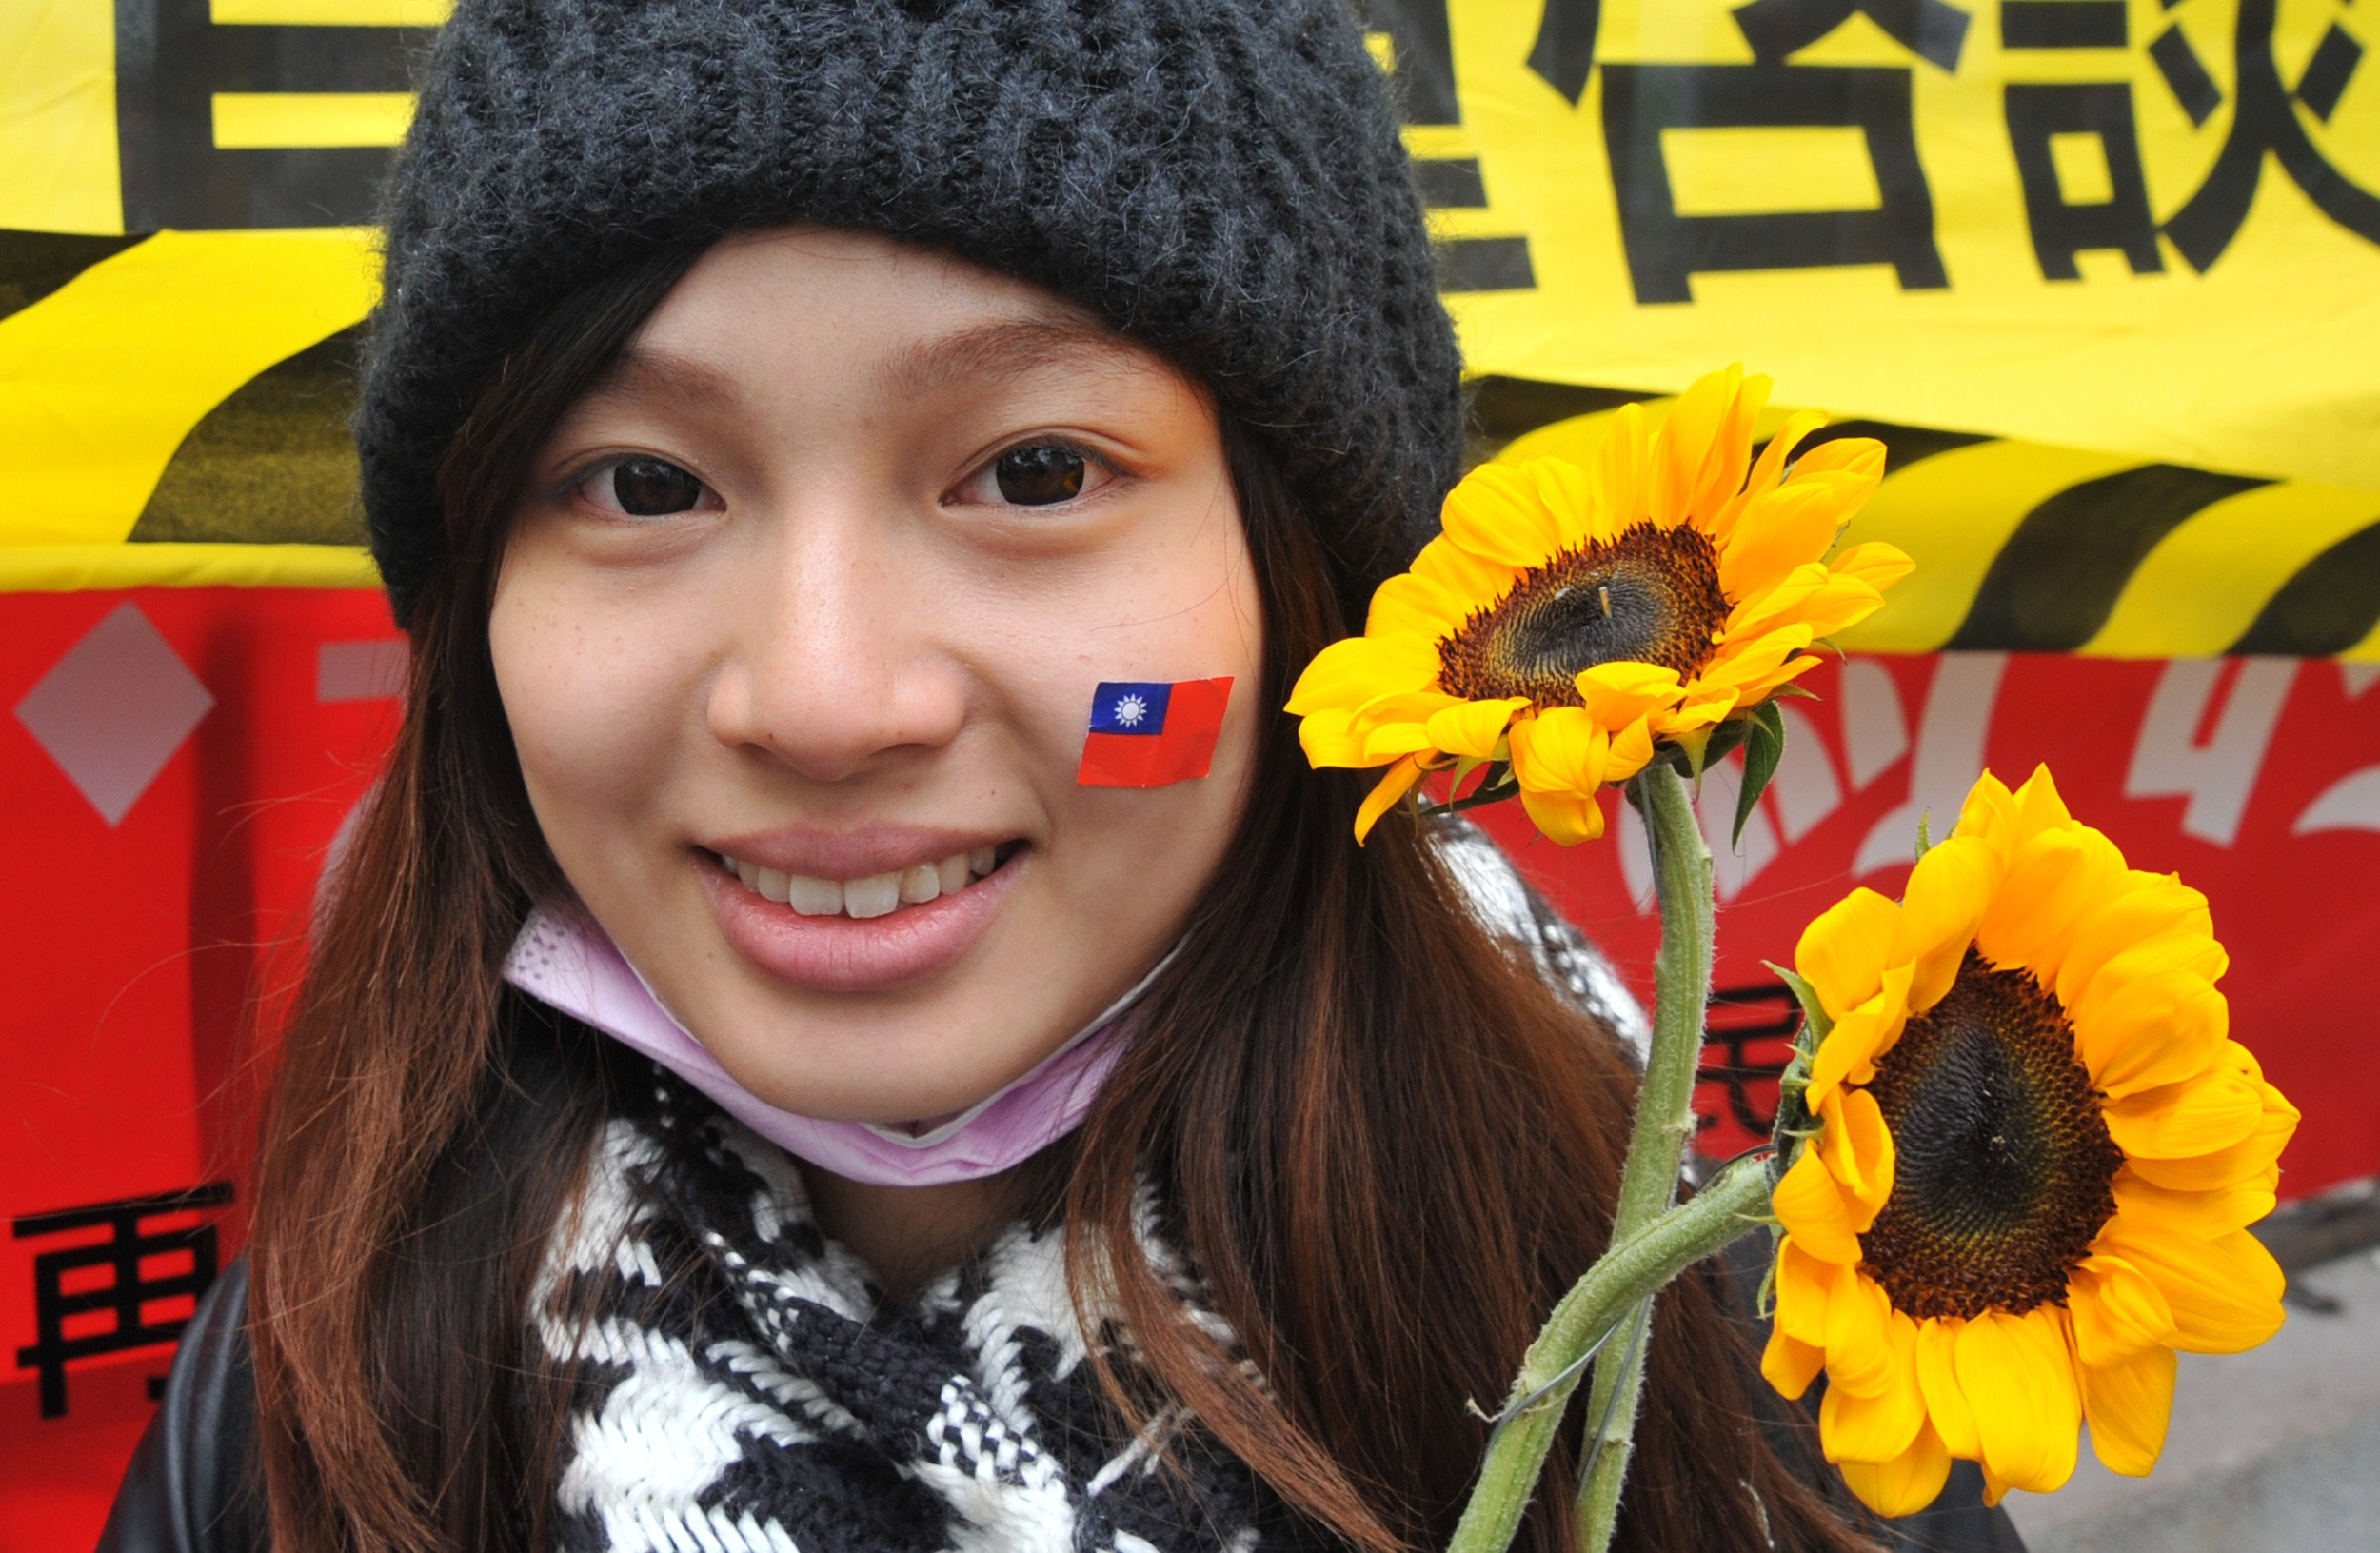 An activist holds sunflowers and wears a sticker of Taiwan's national flag on her face in support of student protesters occupying the parliament building in Taipei on March 21, 2014